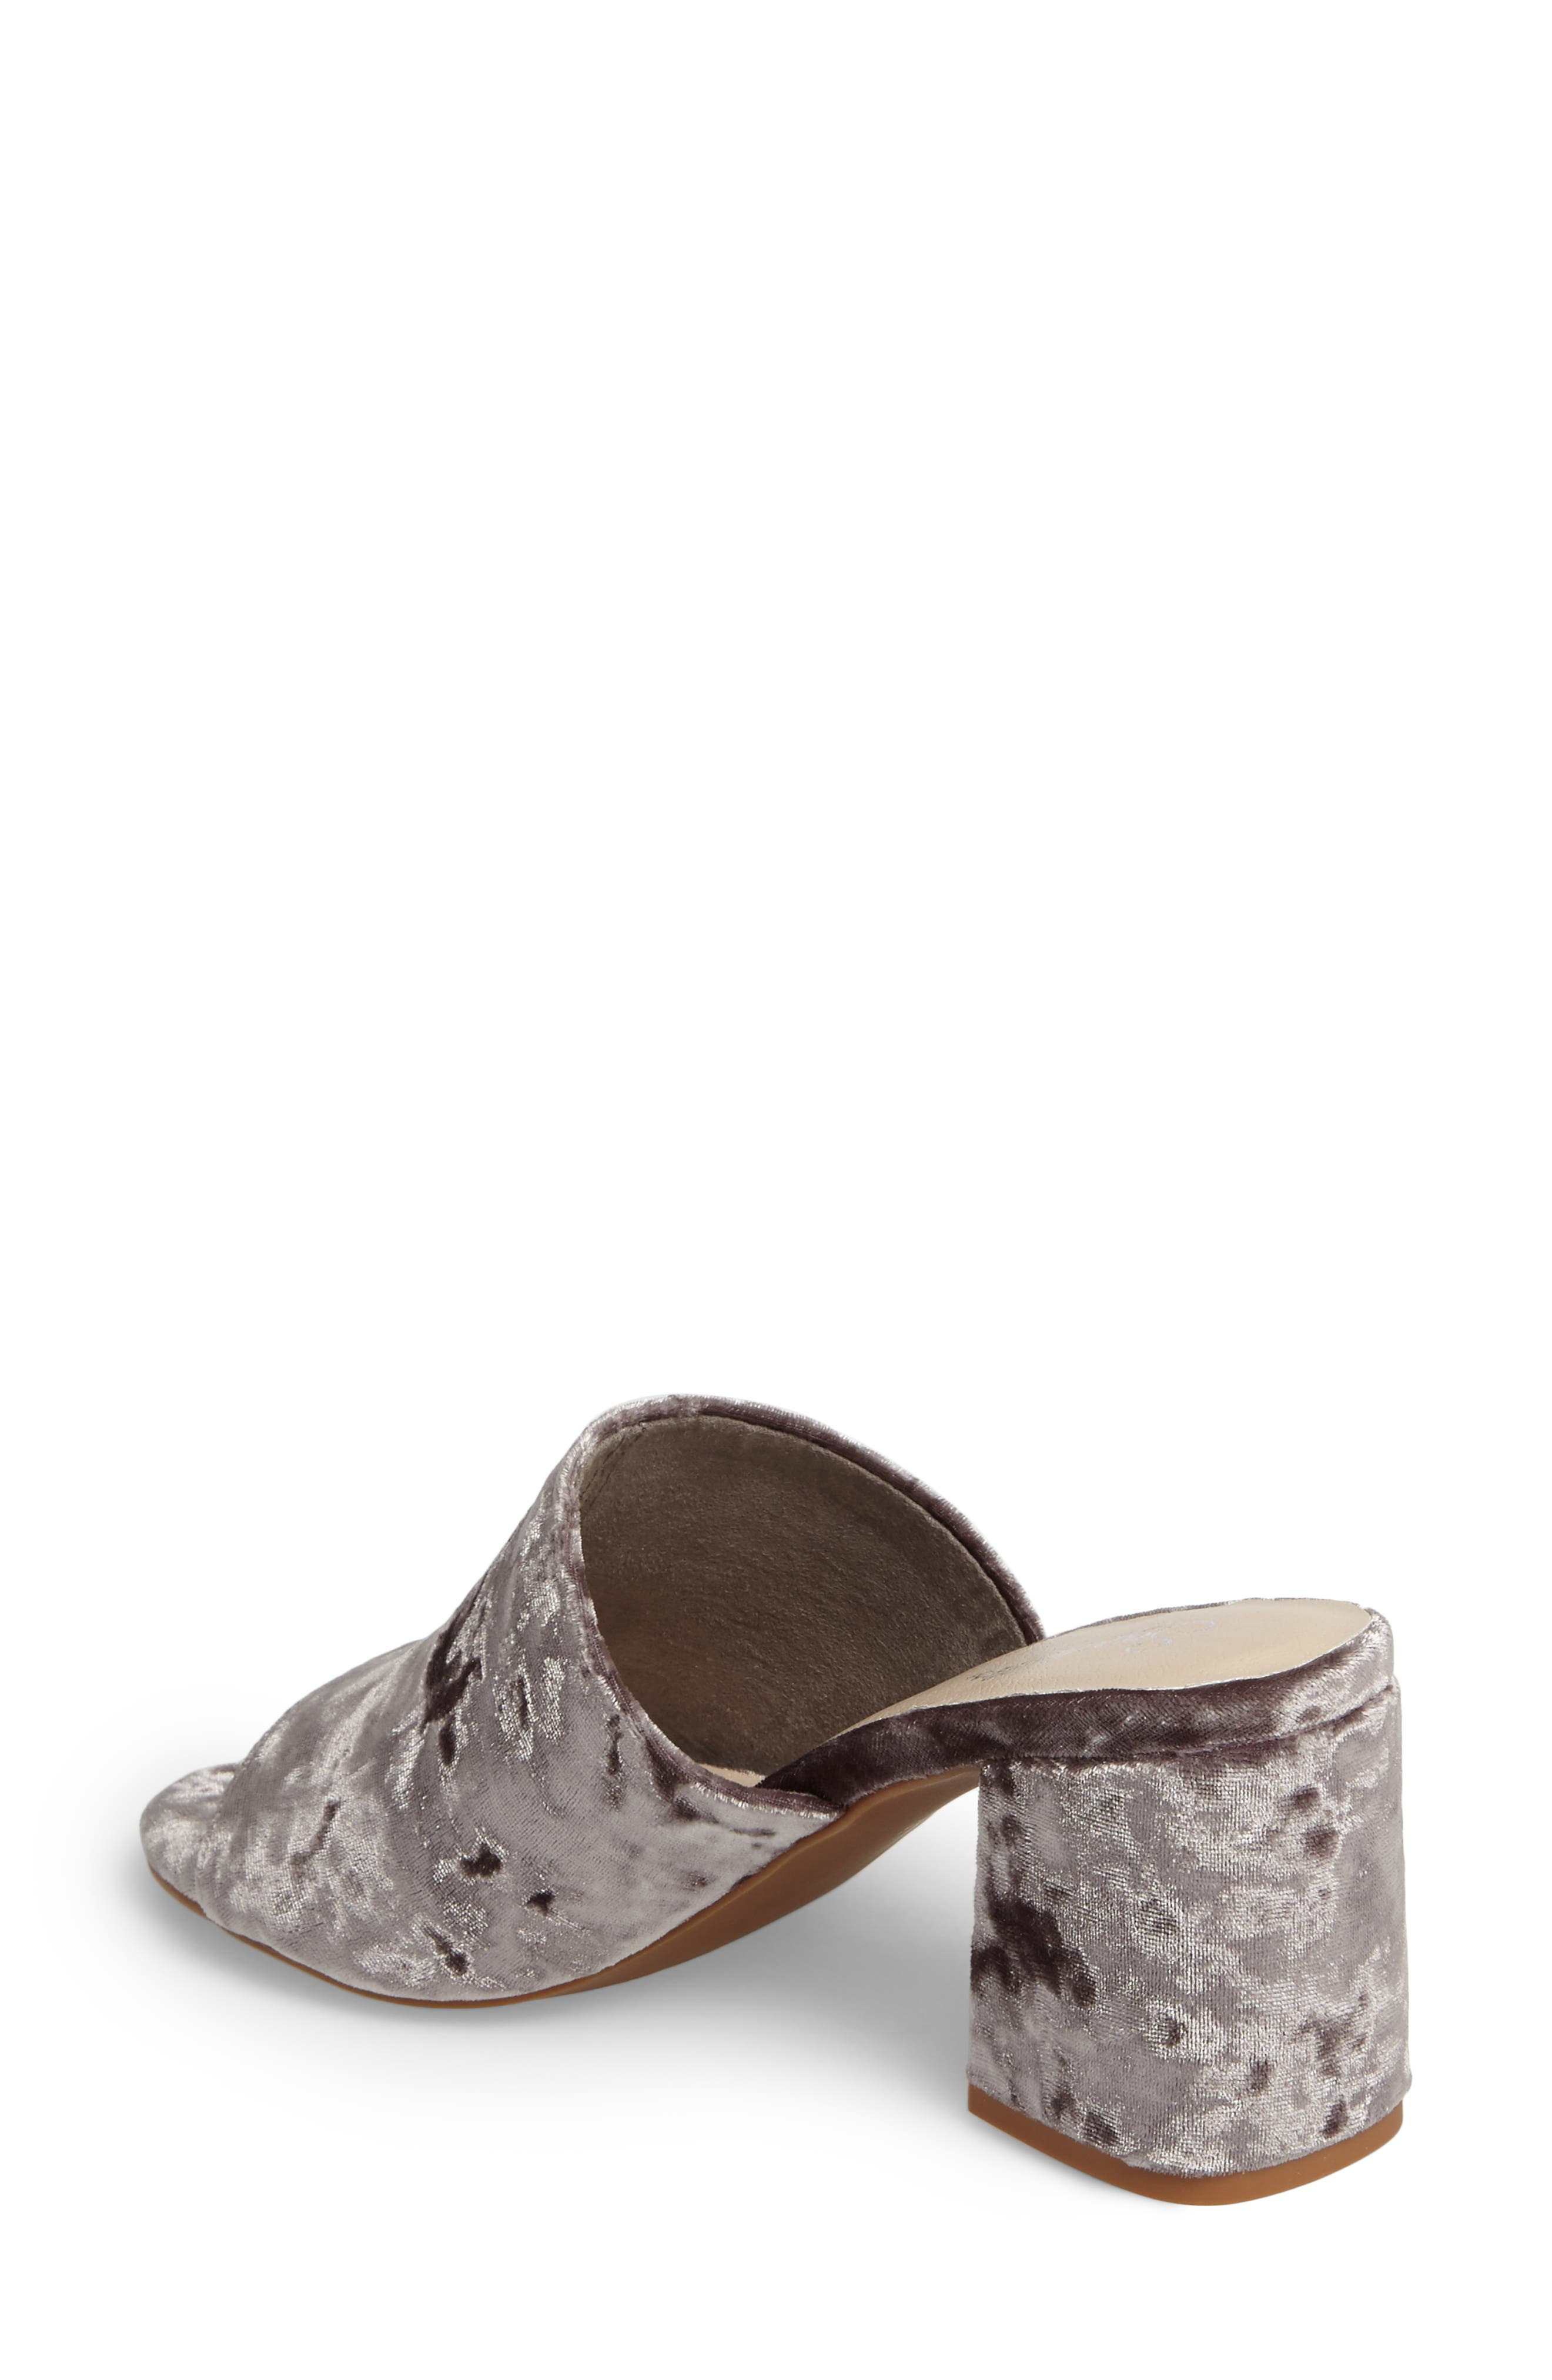 Commute Flared Heel Slide Sandal,                             Alternate thumbnail 2, color,                             Grey Velvet Fabric